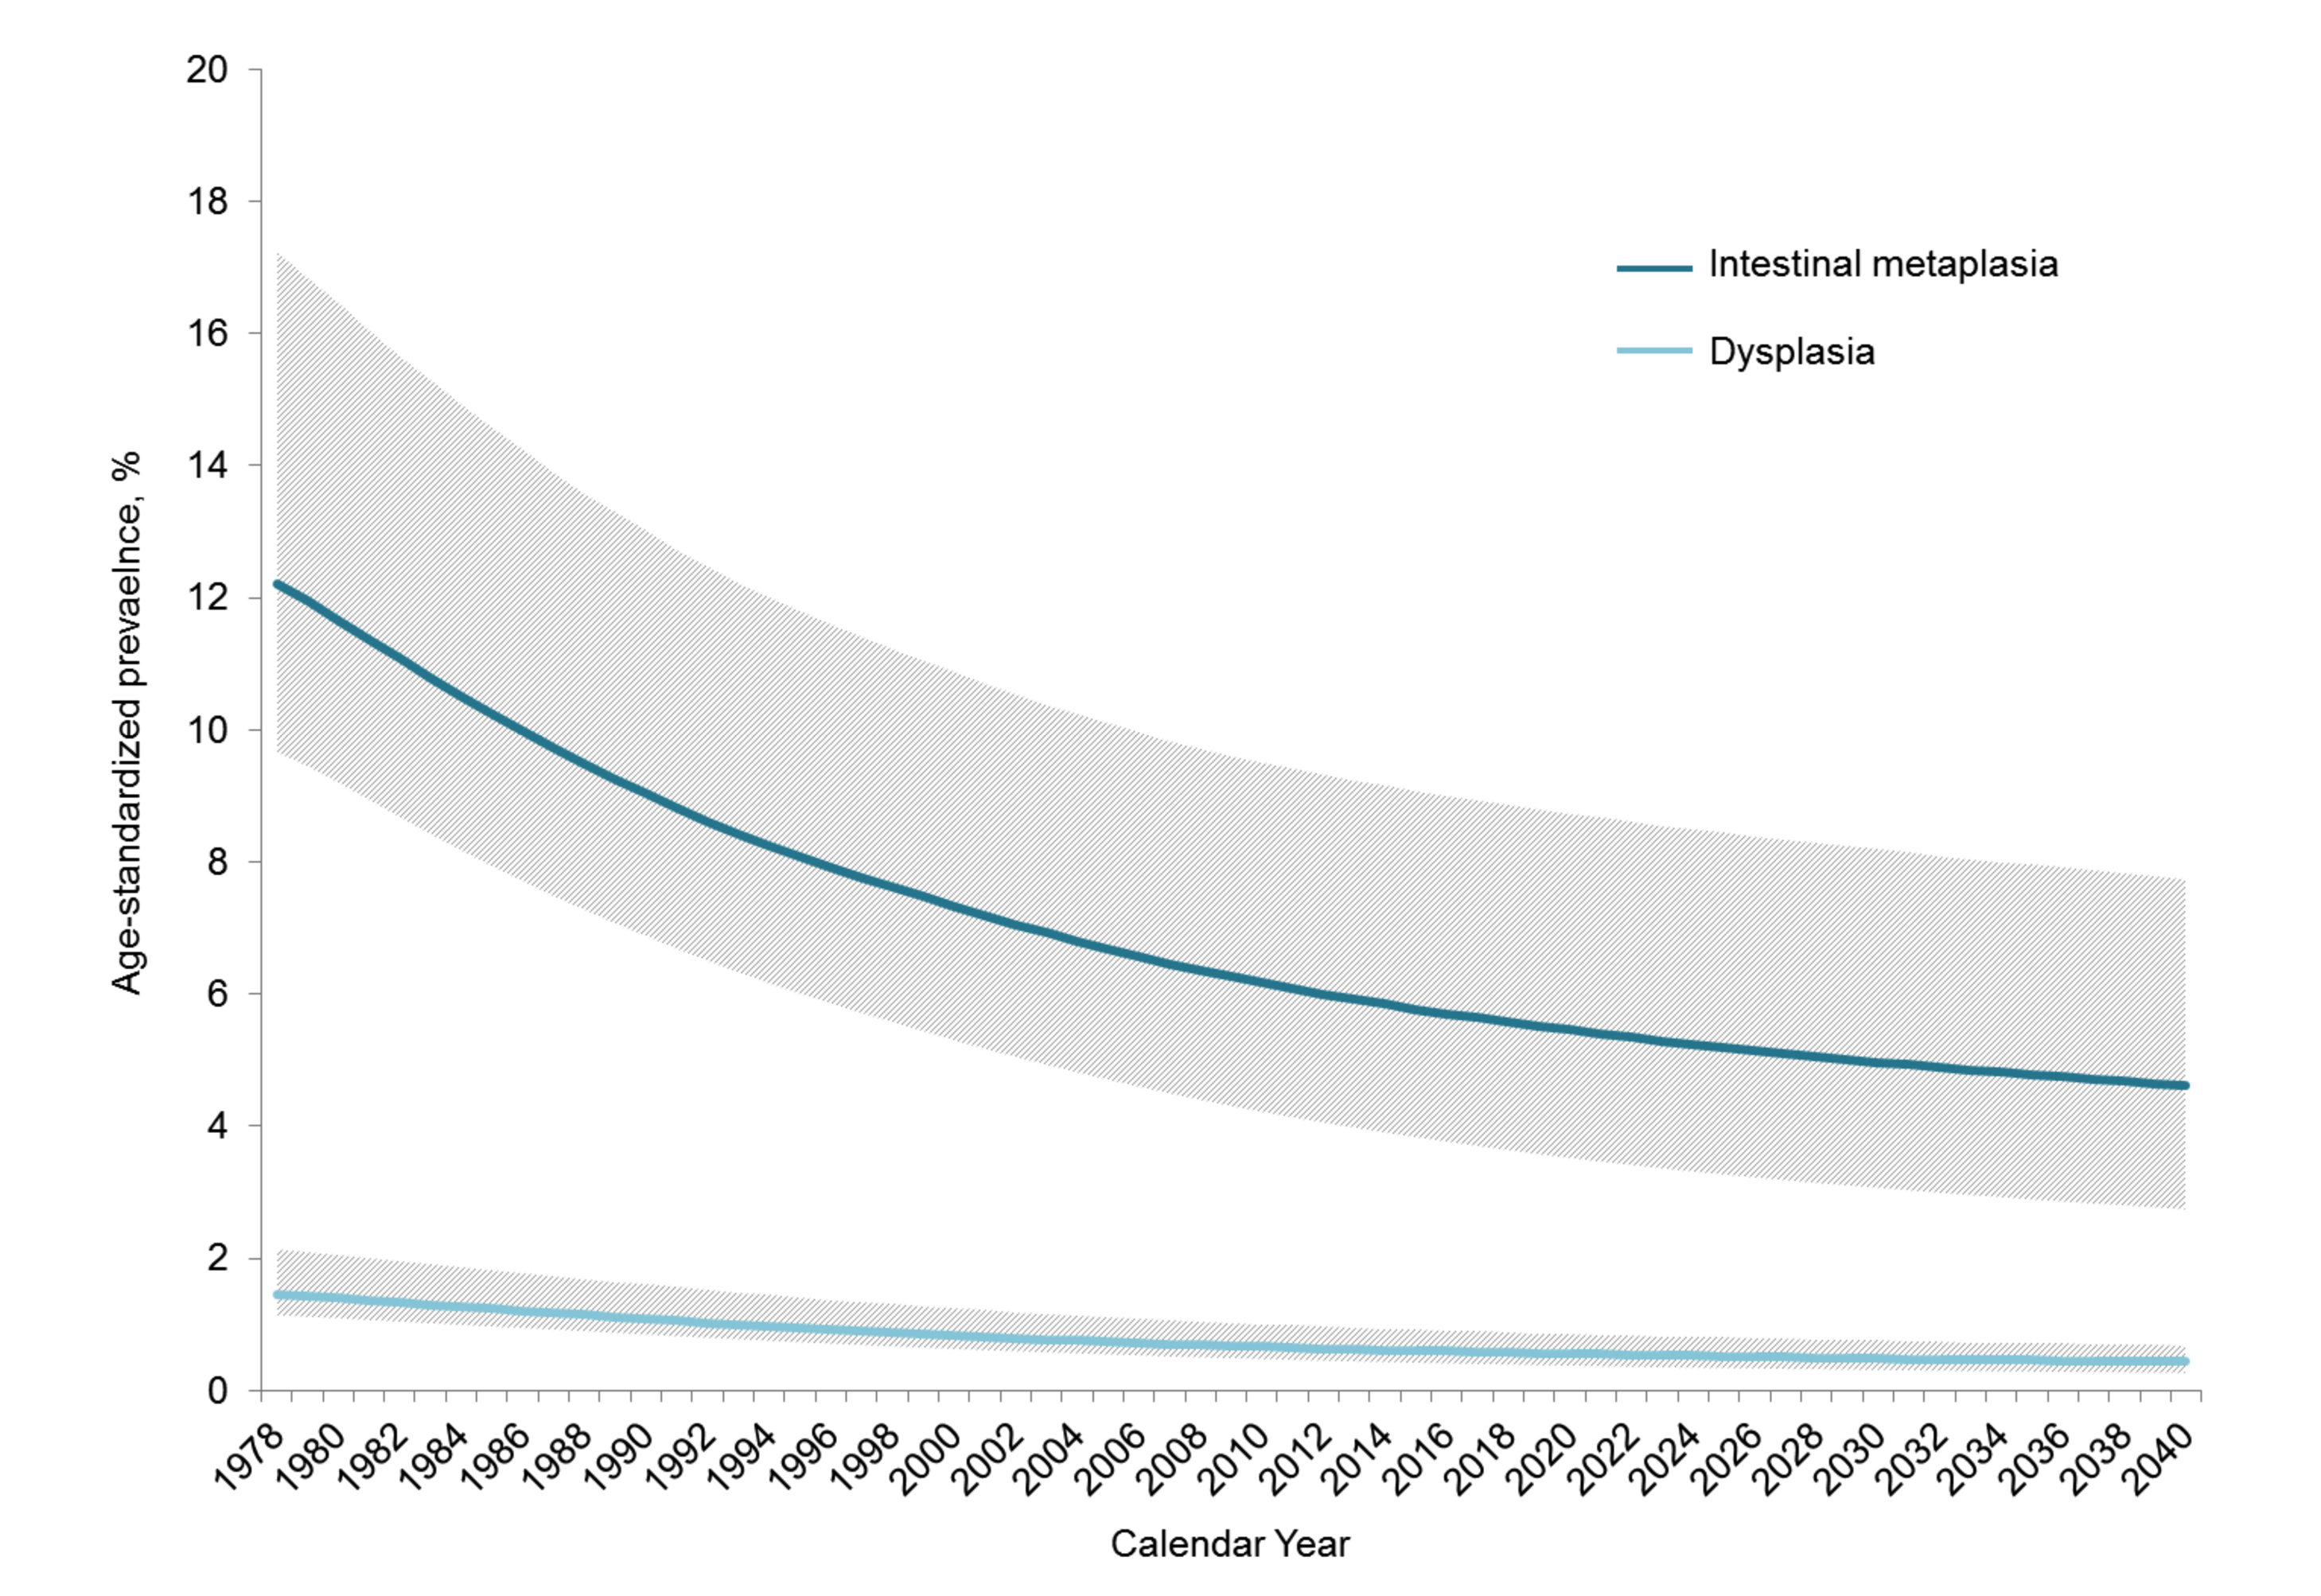 Age-standardized prevalence of precancerous lesions between 1978 and 2040.